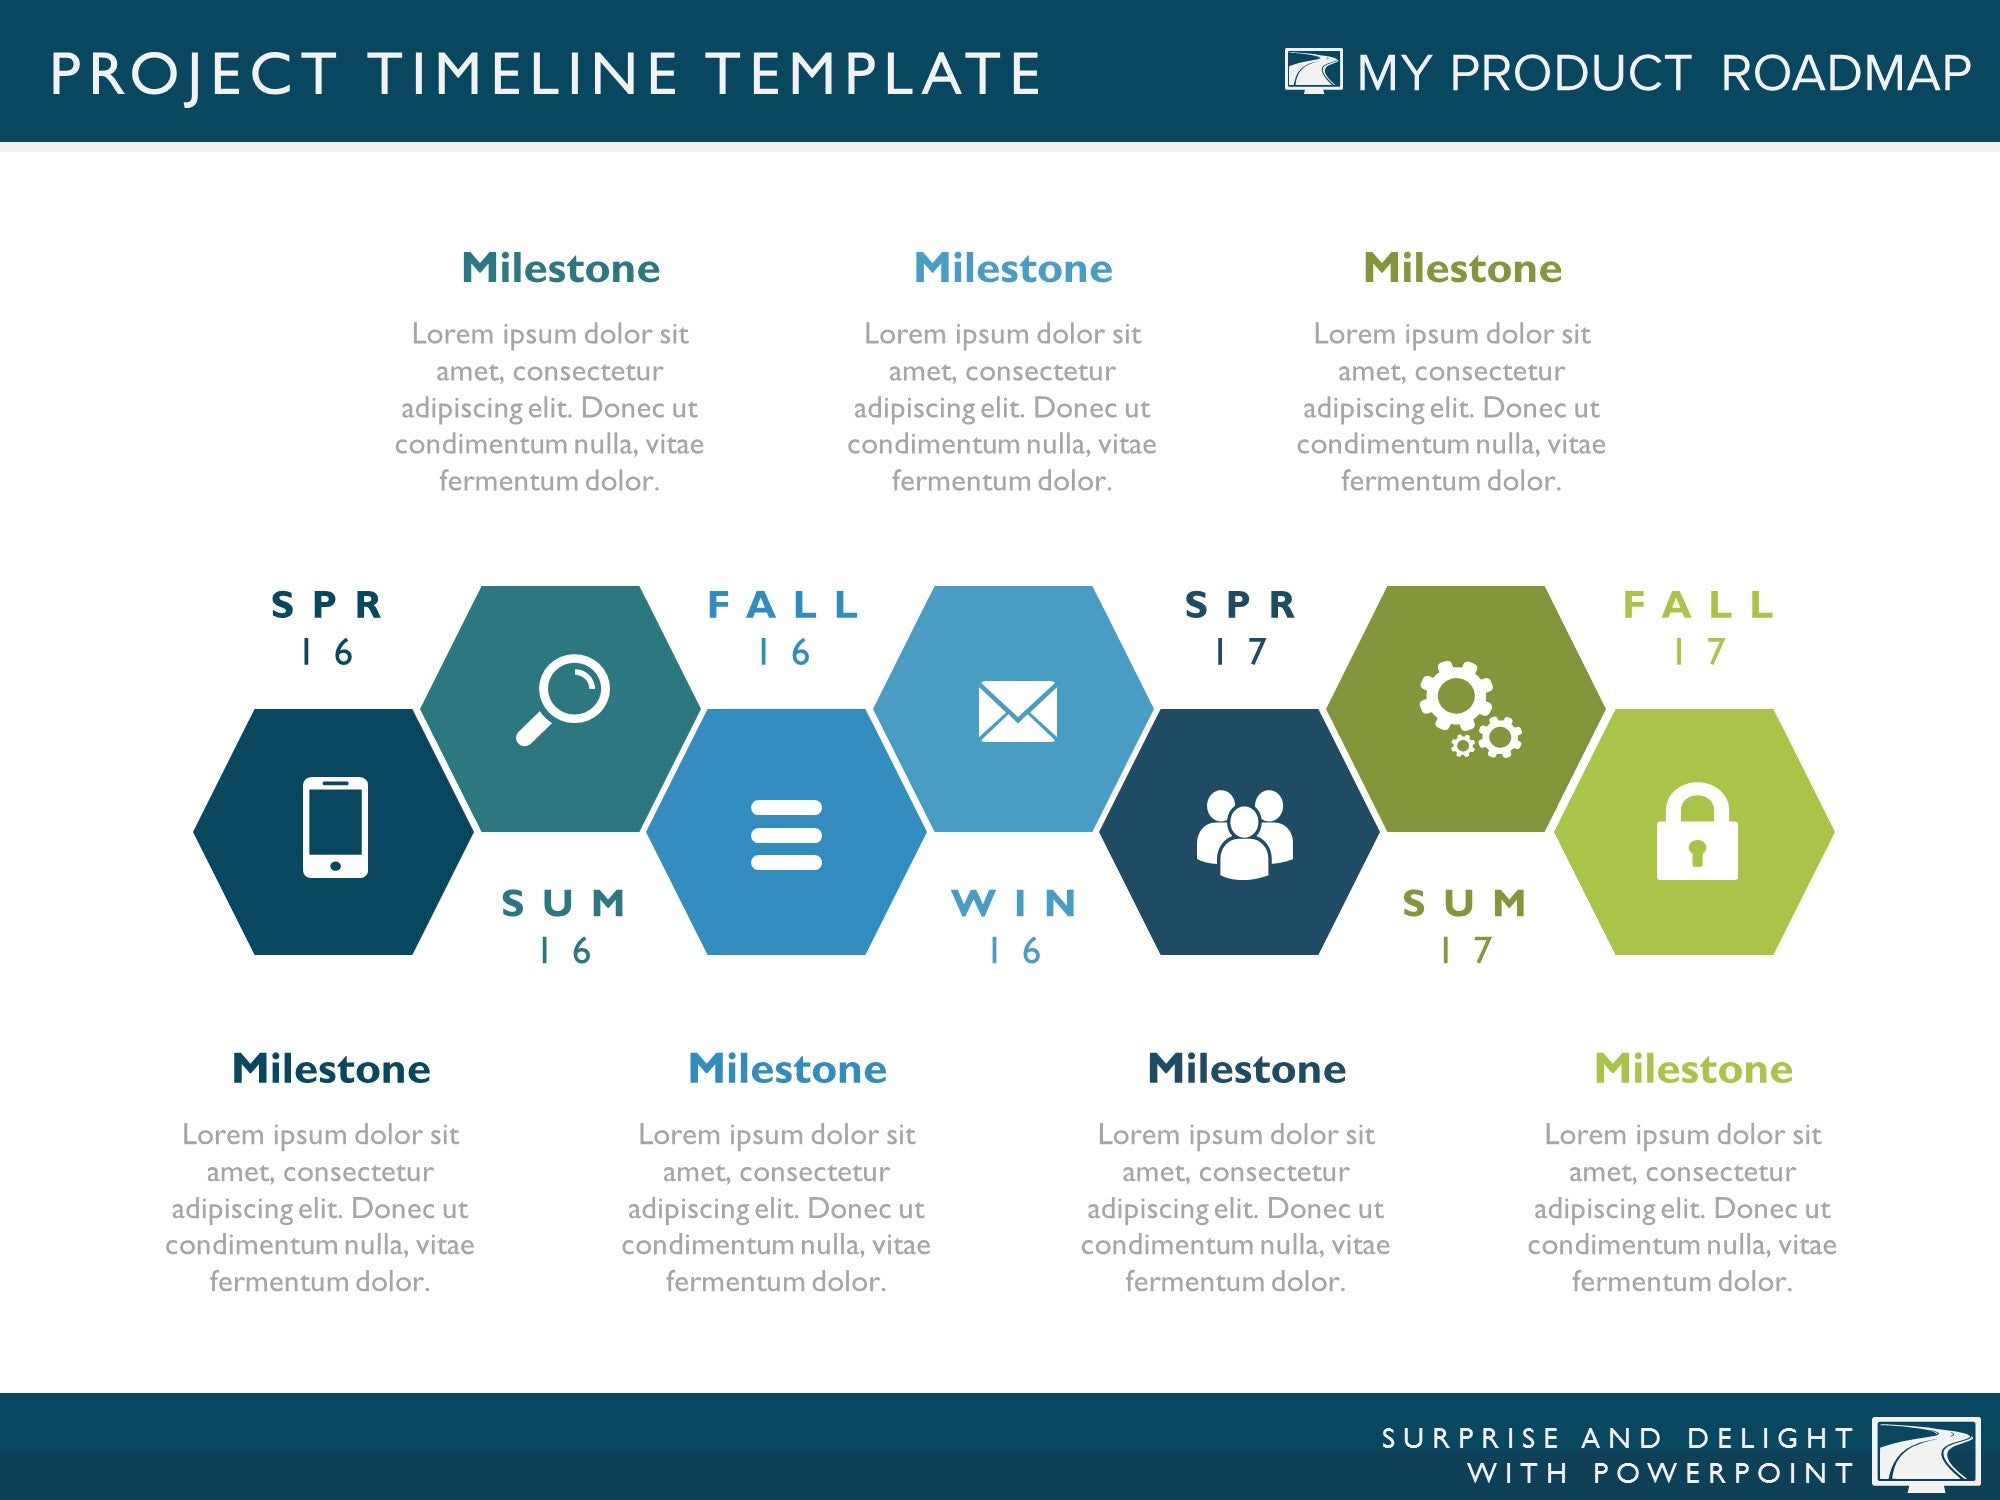 Seven Phase Powerpoint Timeline Slide My Product Roadmap - Timeline roadmap template